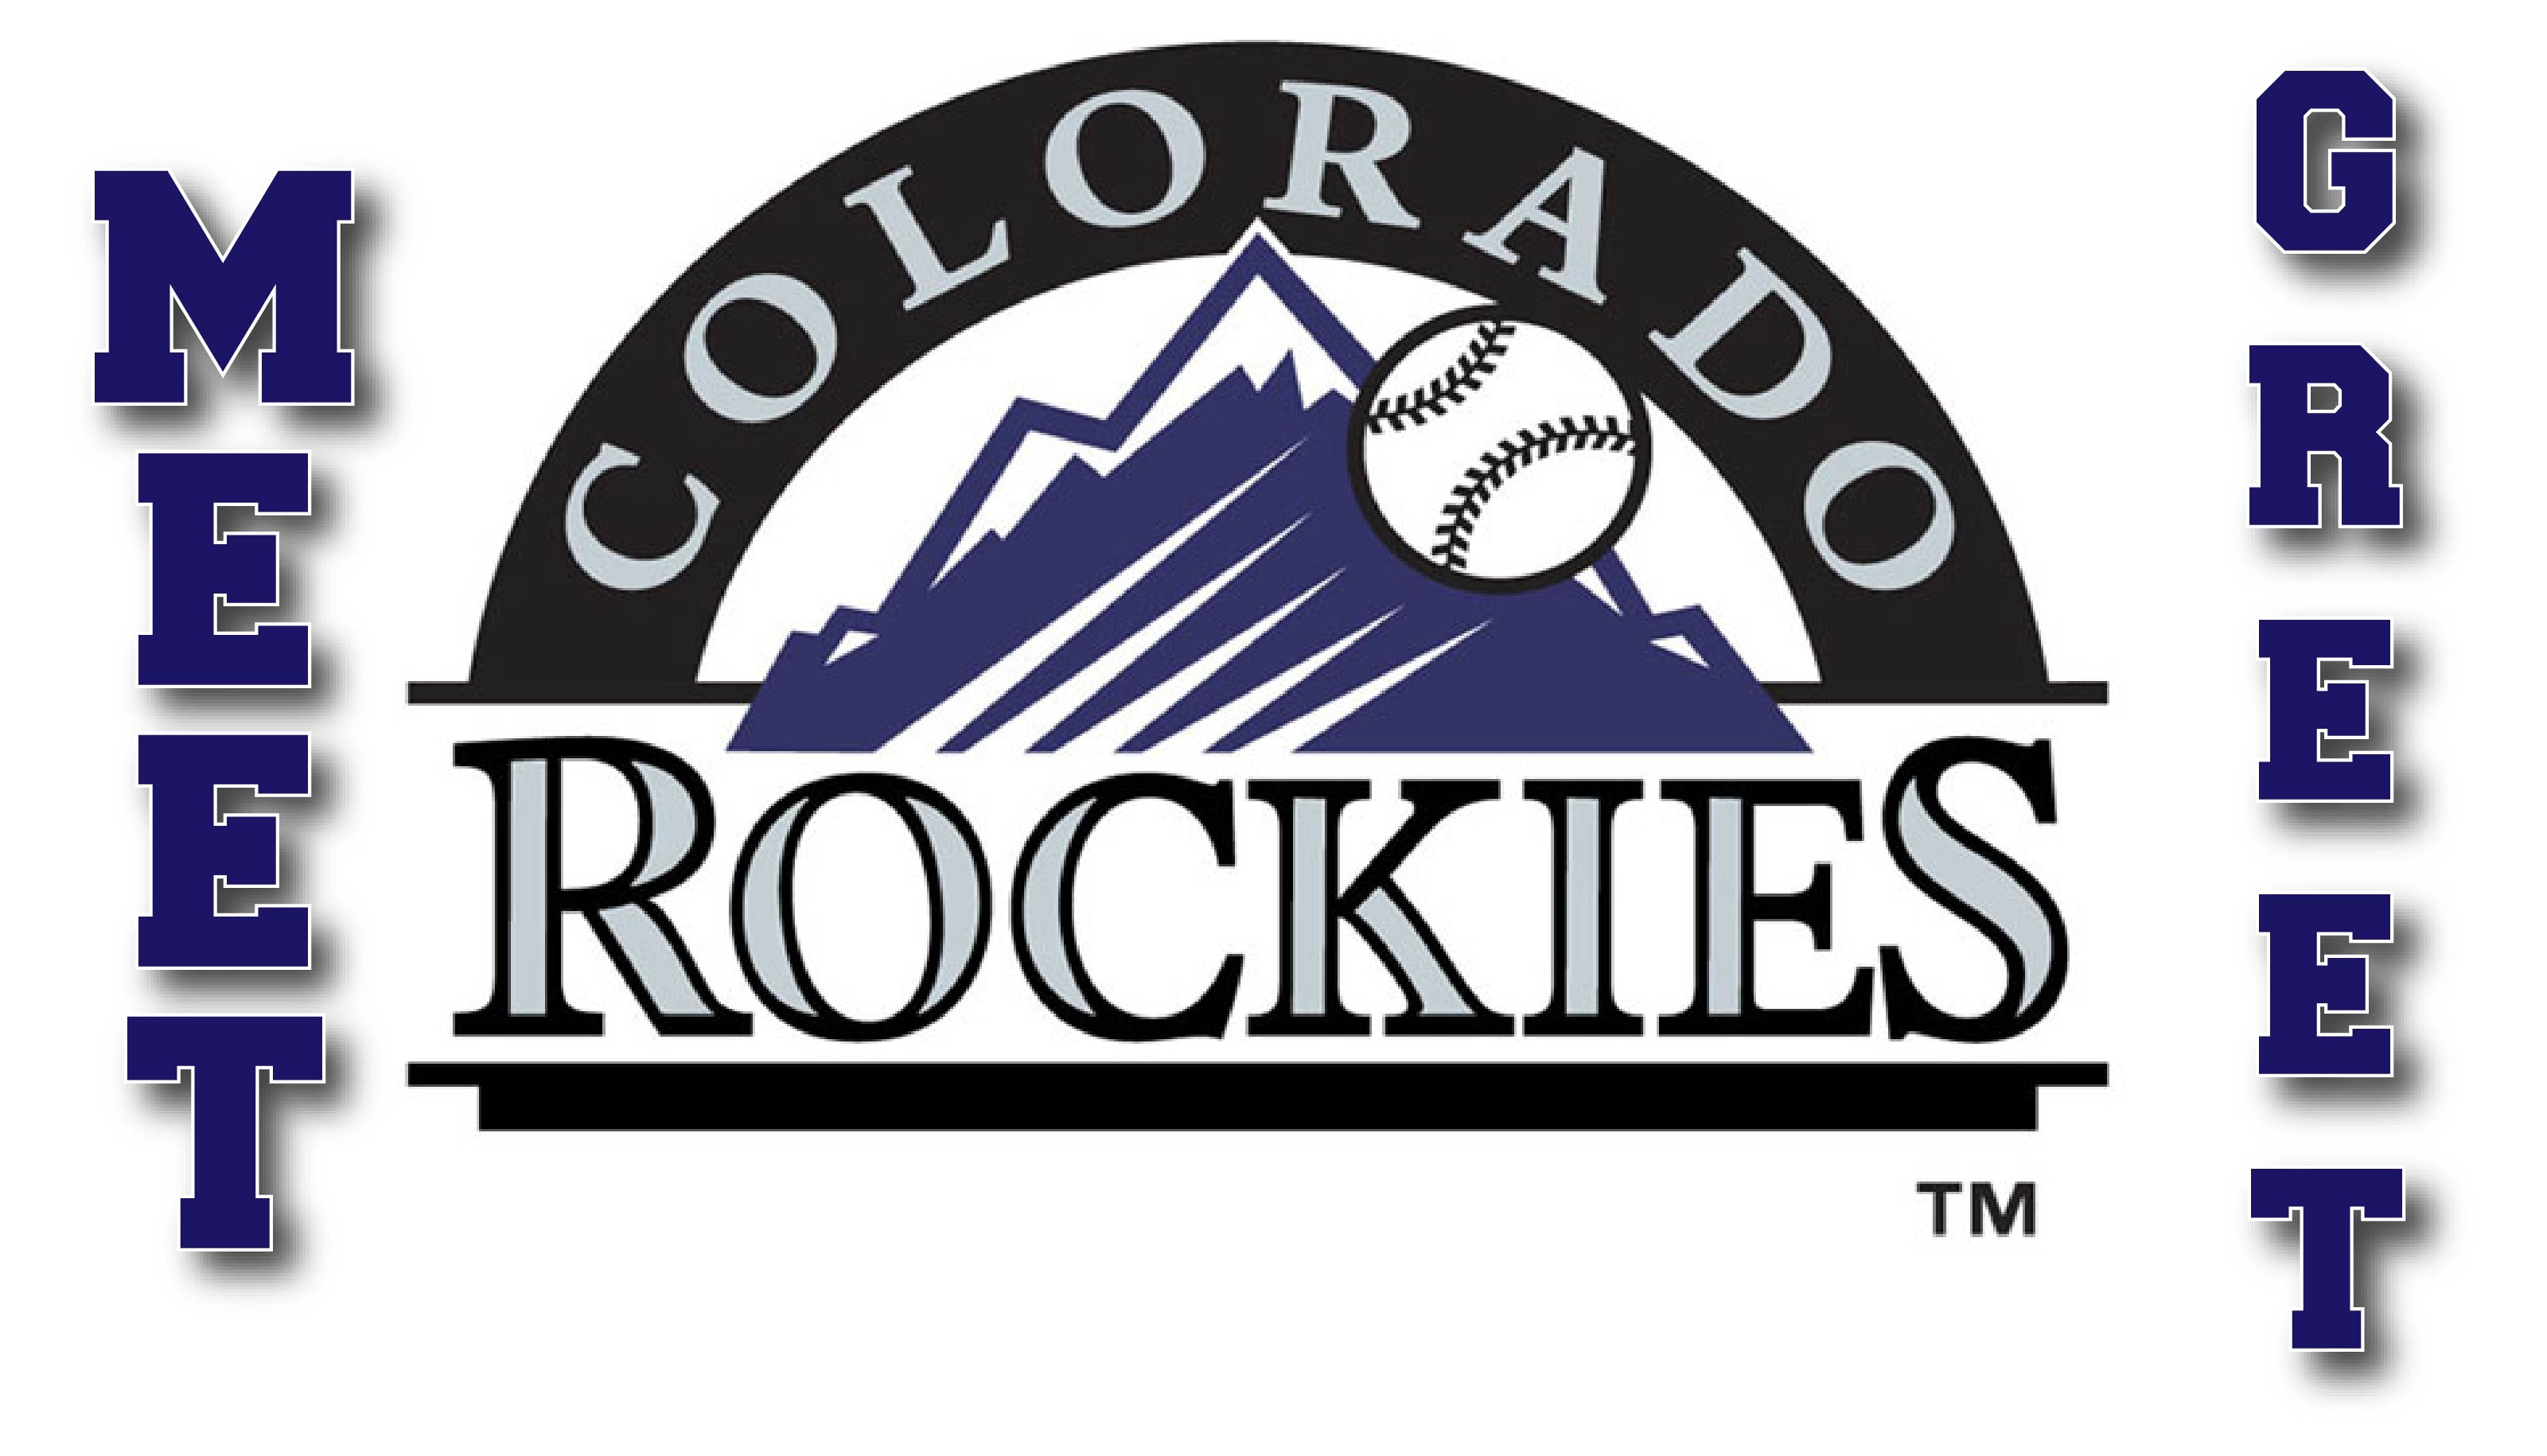 Save the Date: Colorado Rockies Meet and Greet at the Hub